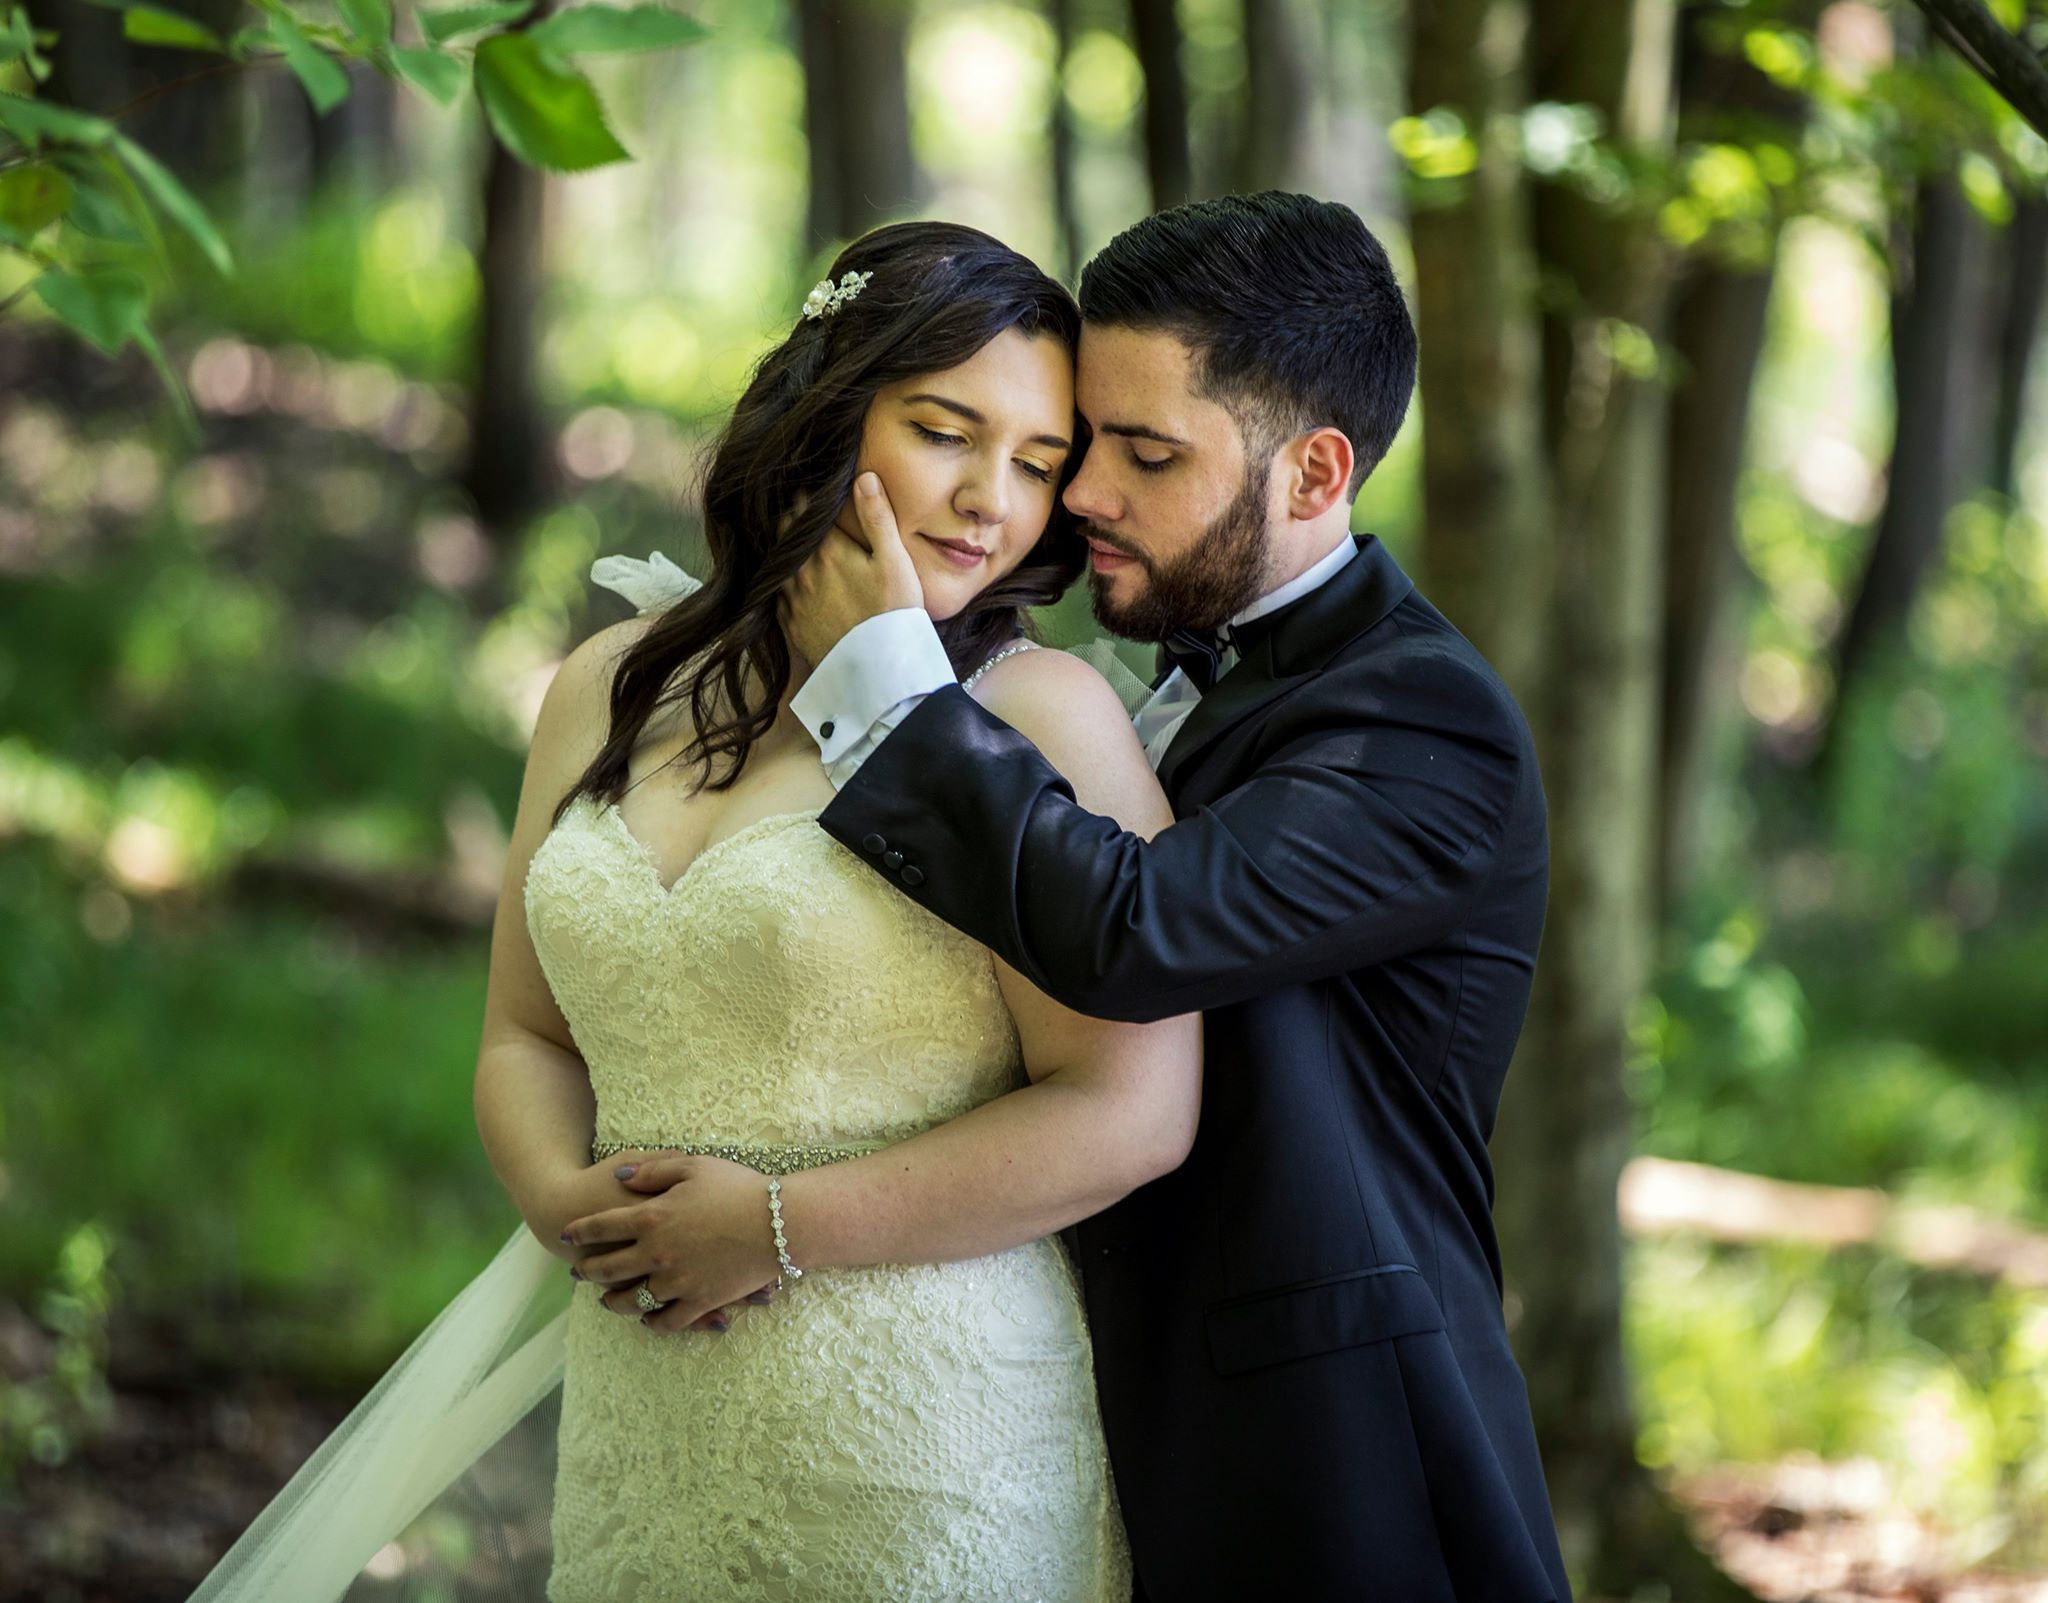 Romantic Pose of a couple at their wedding